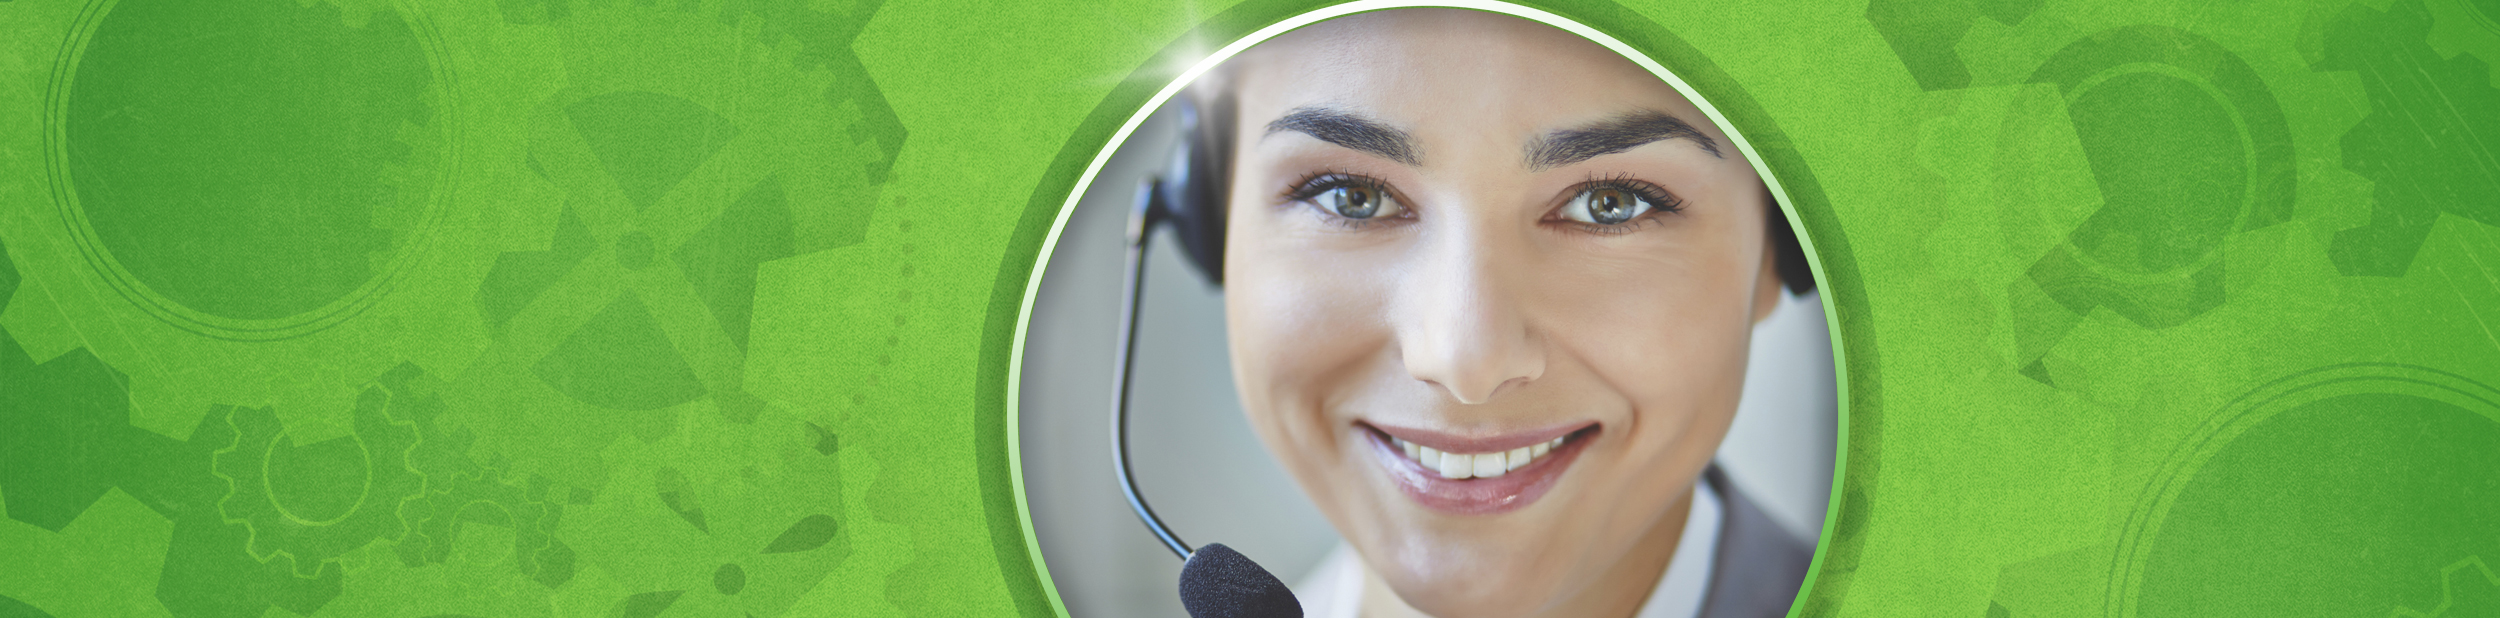 <h3>Phone and Unified Communications</h3><p><p>Are you looking for high quality phone systems and unified communications? Simpleworks specializes in enterprise quality Voice over IP (VoIP) phone systems.</p> </p><a class='rotate-readmore' href='http://simpleworksit.com/services/phone-and-unified-communications/'>Learn More</a>